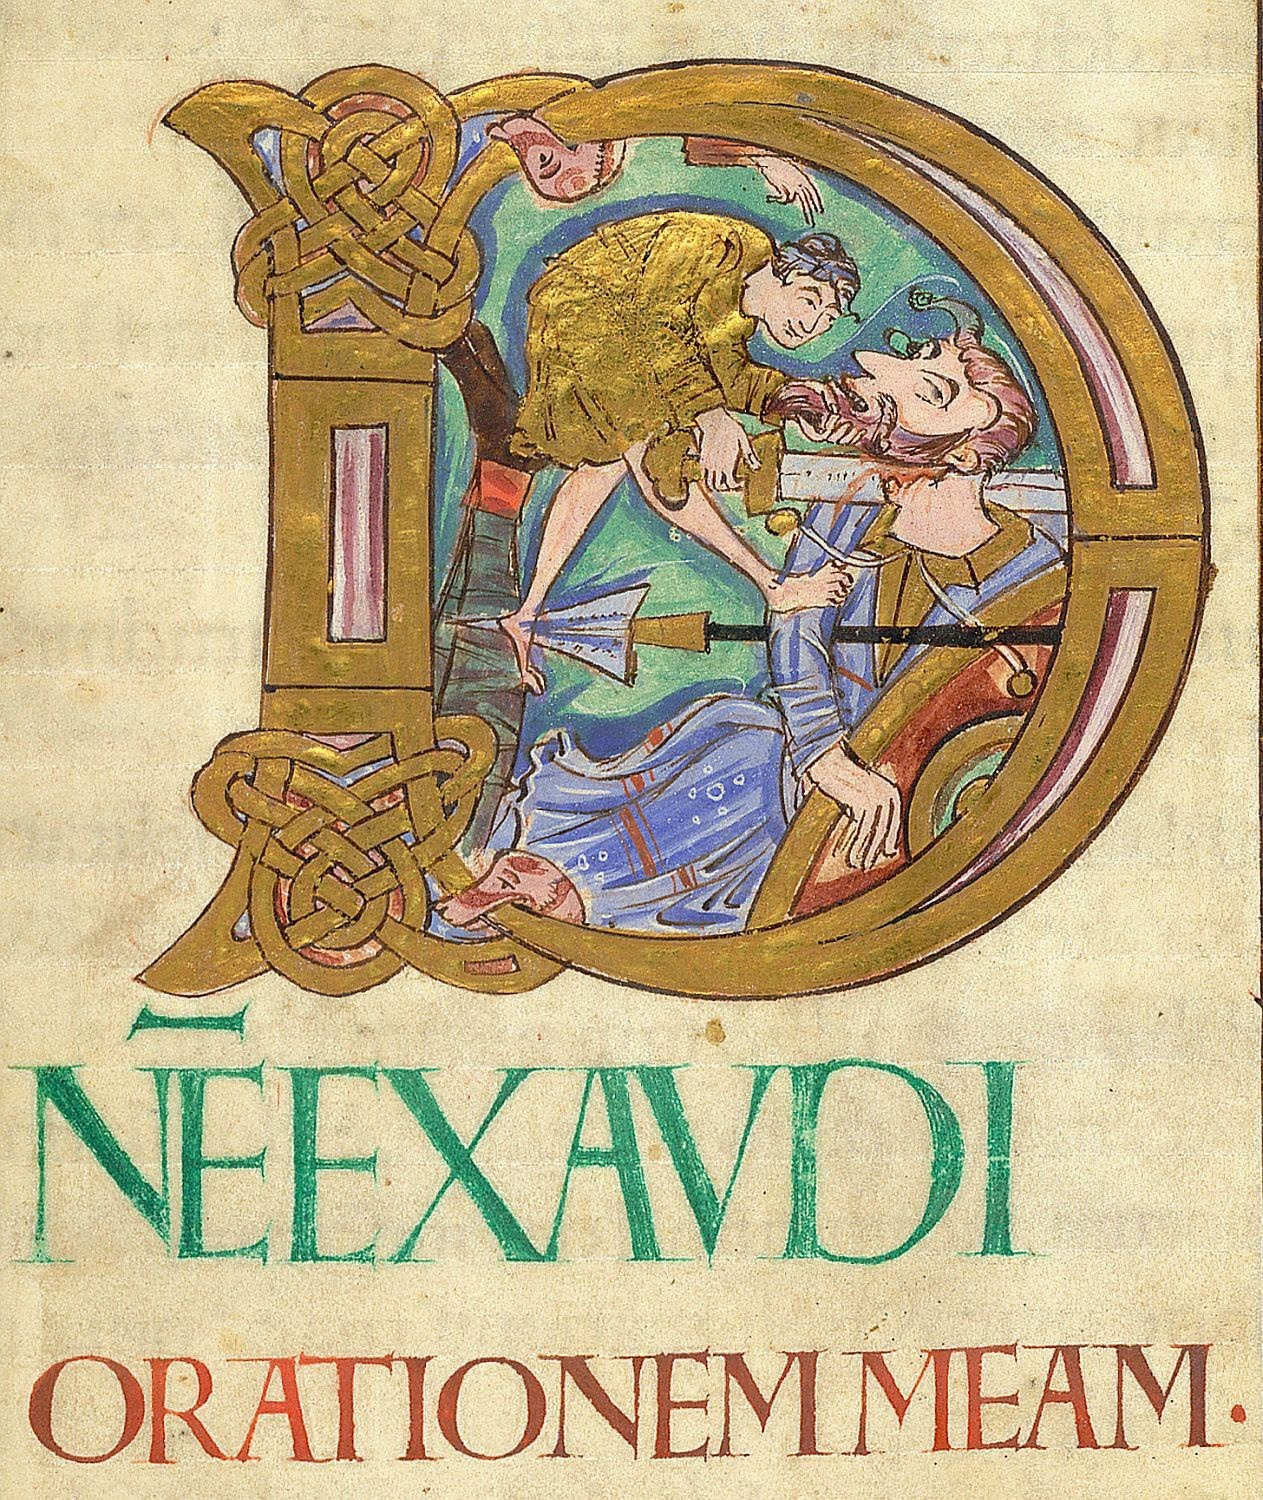 http://www.bl.uk/catalogues/illuminatedmanuscripts/ILLUMIN.ASP?Size=mid&IllID=11262